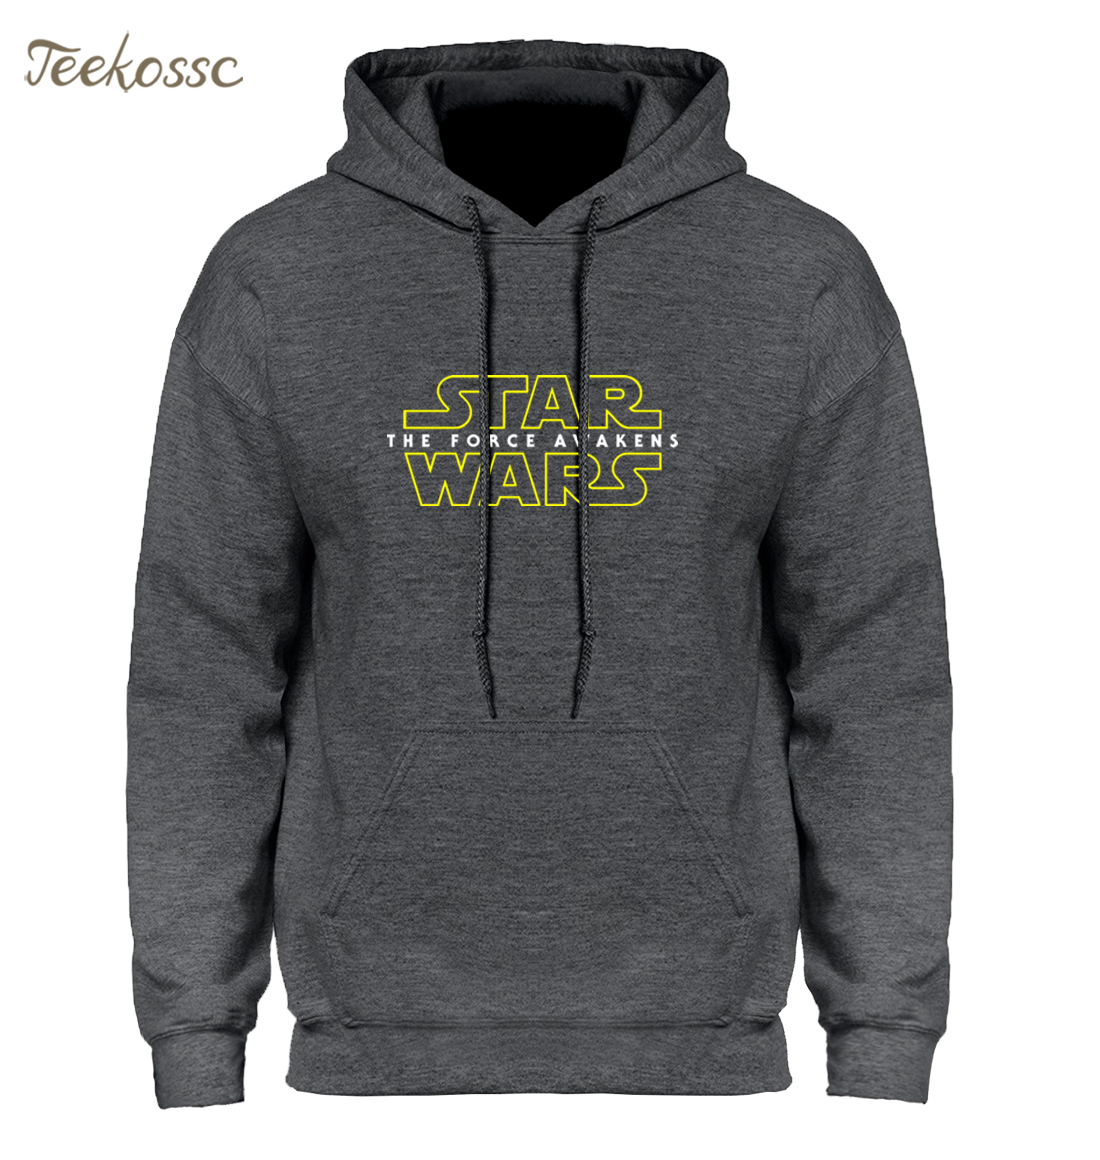 Star Wars Men Hoodies Sweatshirts Mens 2018 New Brand Winter Autumn Hooded Sweatshirt Fleece Warm Harajuku Long Sleeve Hoodie